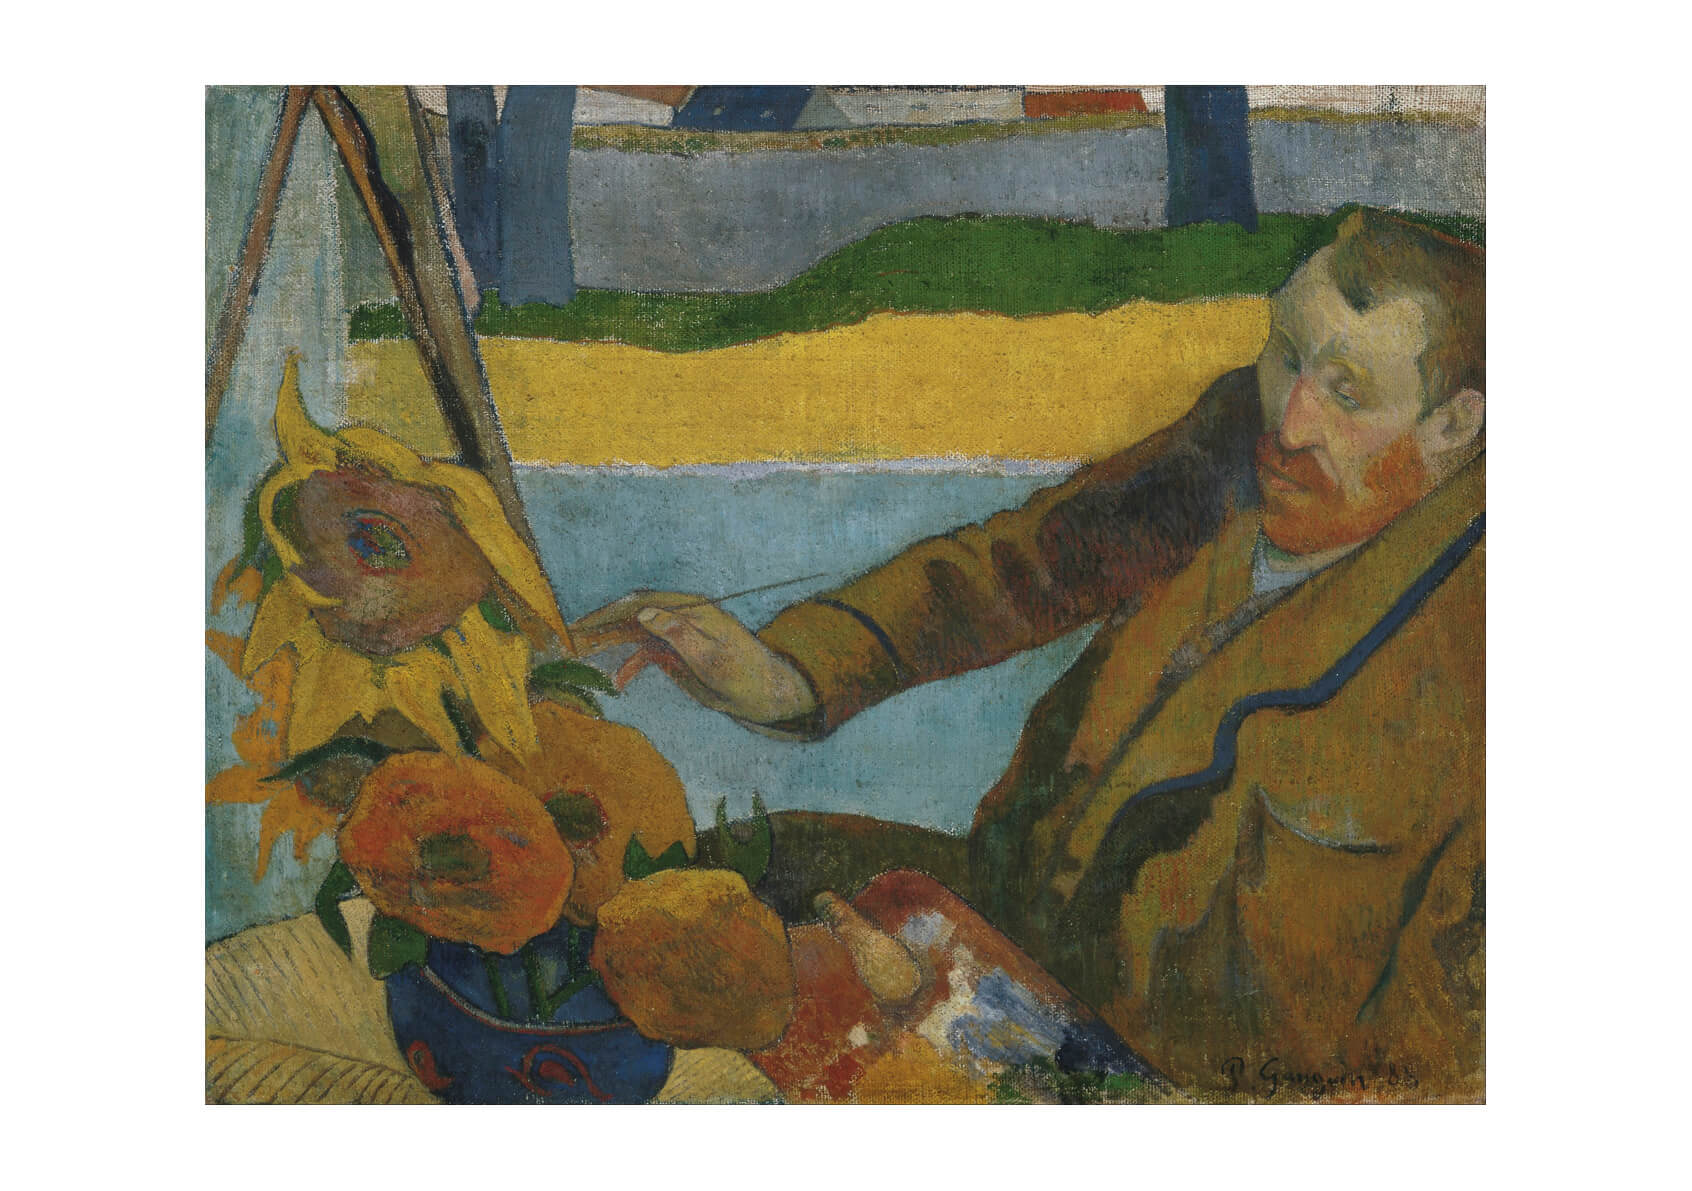 Paul Gauguin - Vincent van Gogh painting Sunflowers